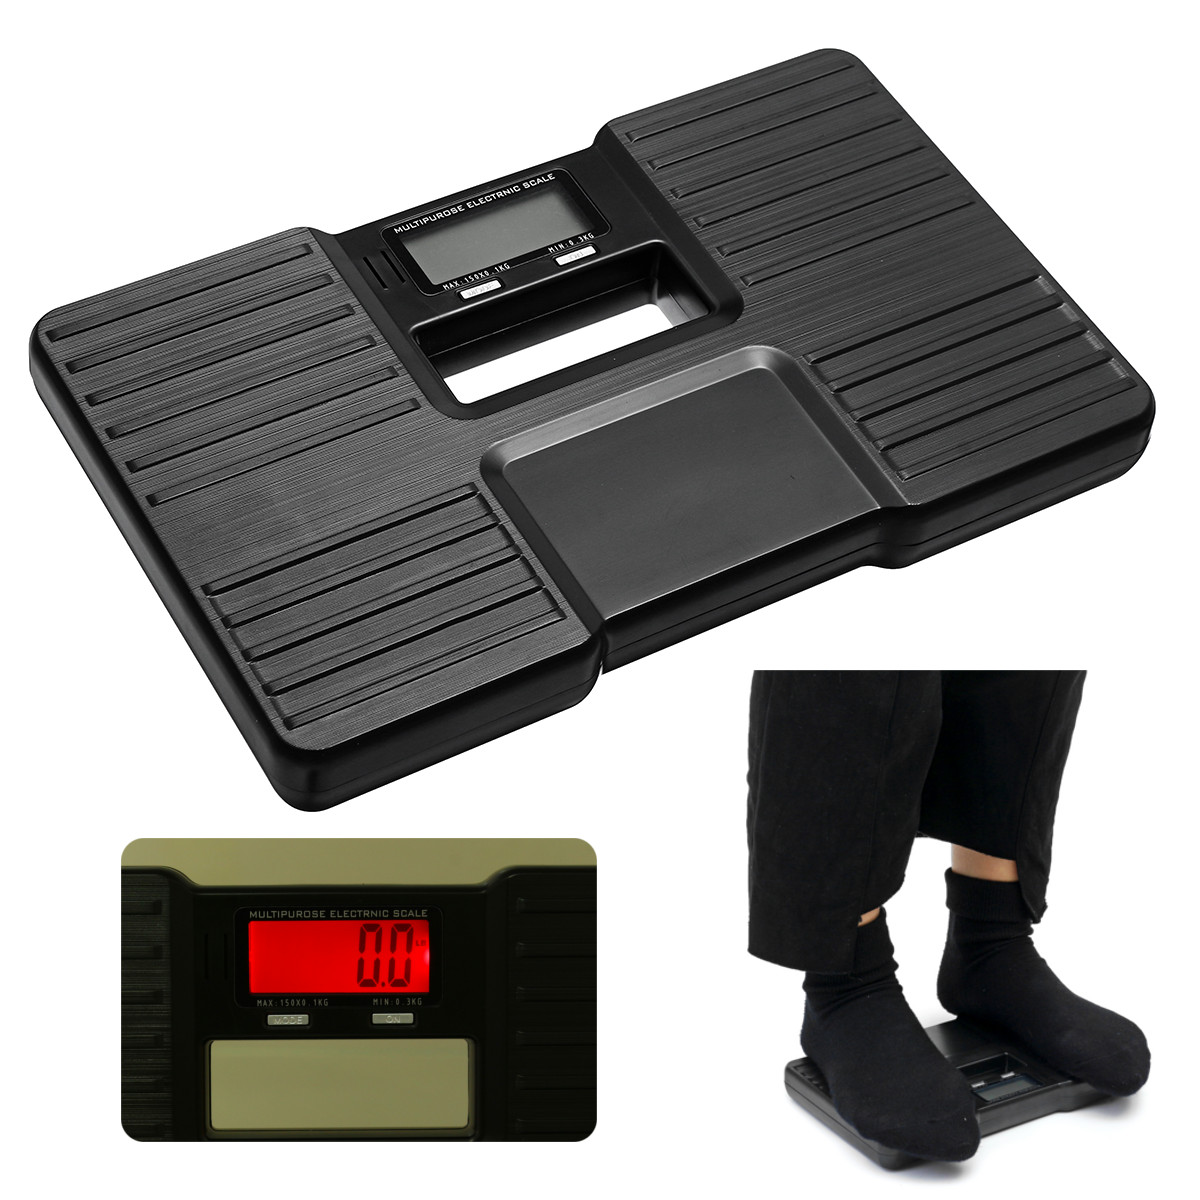 330LB/150KG Portable Electronic Weighing Scales Body Health Fat Weight Digital Scale LCD Display Weight Instruments Tools